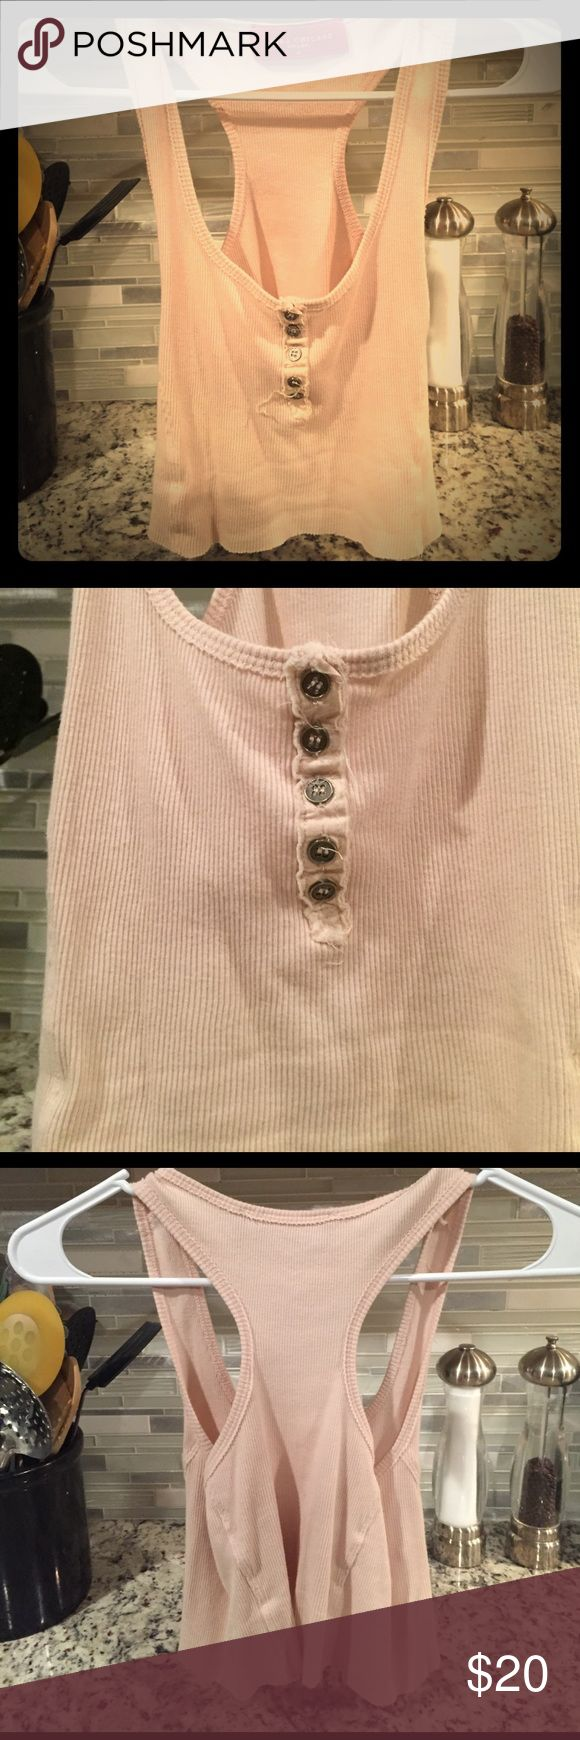 Akita Red Label Button Up Crop Medium Beige in color, Akita red label button up crop, looks great with a pair of jean shorts. Akita is a popular clothing store in Chicago. Size is medium and fits true to size. I never wore this, took the tags off bc I thought I would but never got around to it. AKIRA Tops Crop Tops